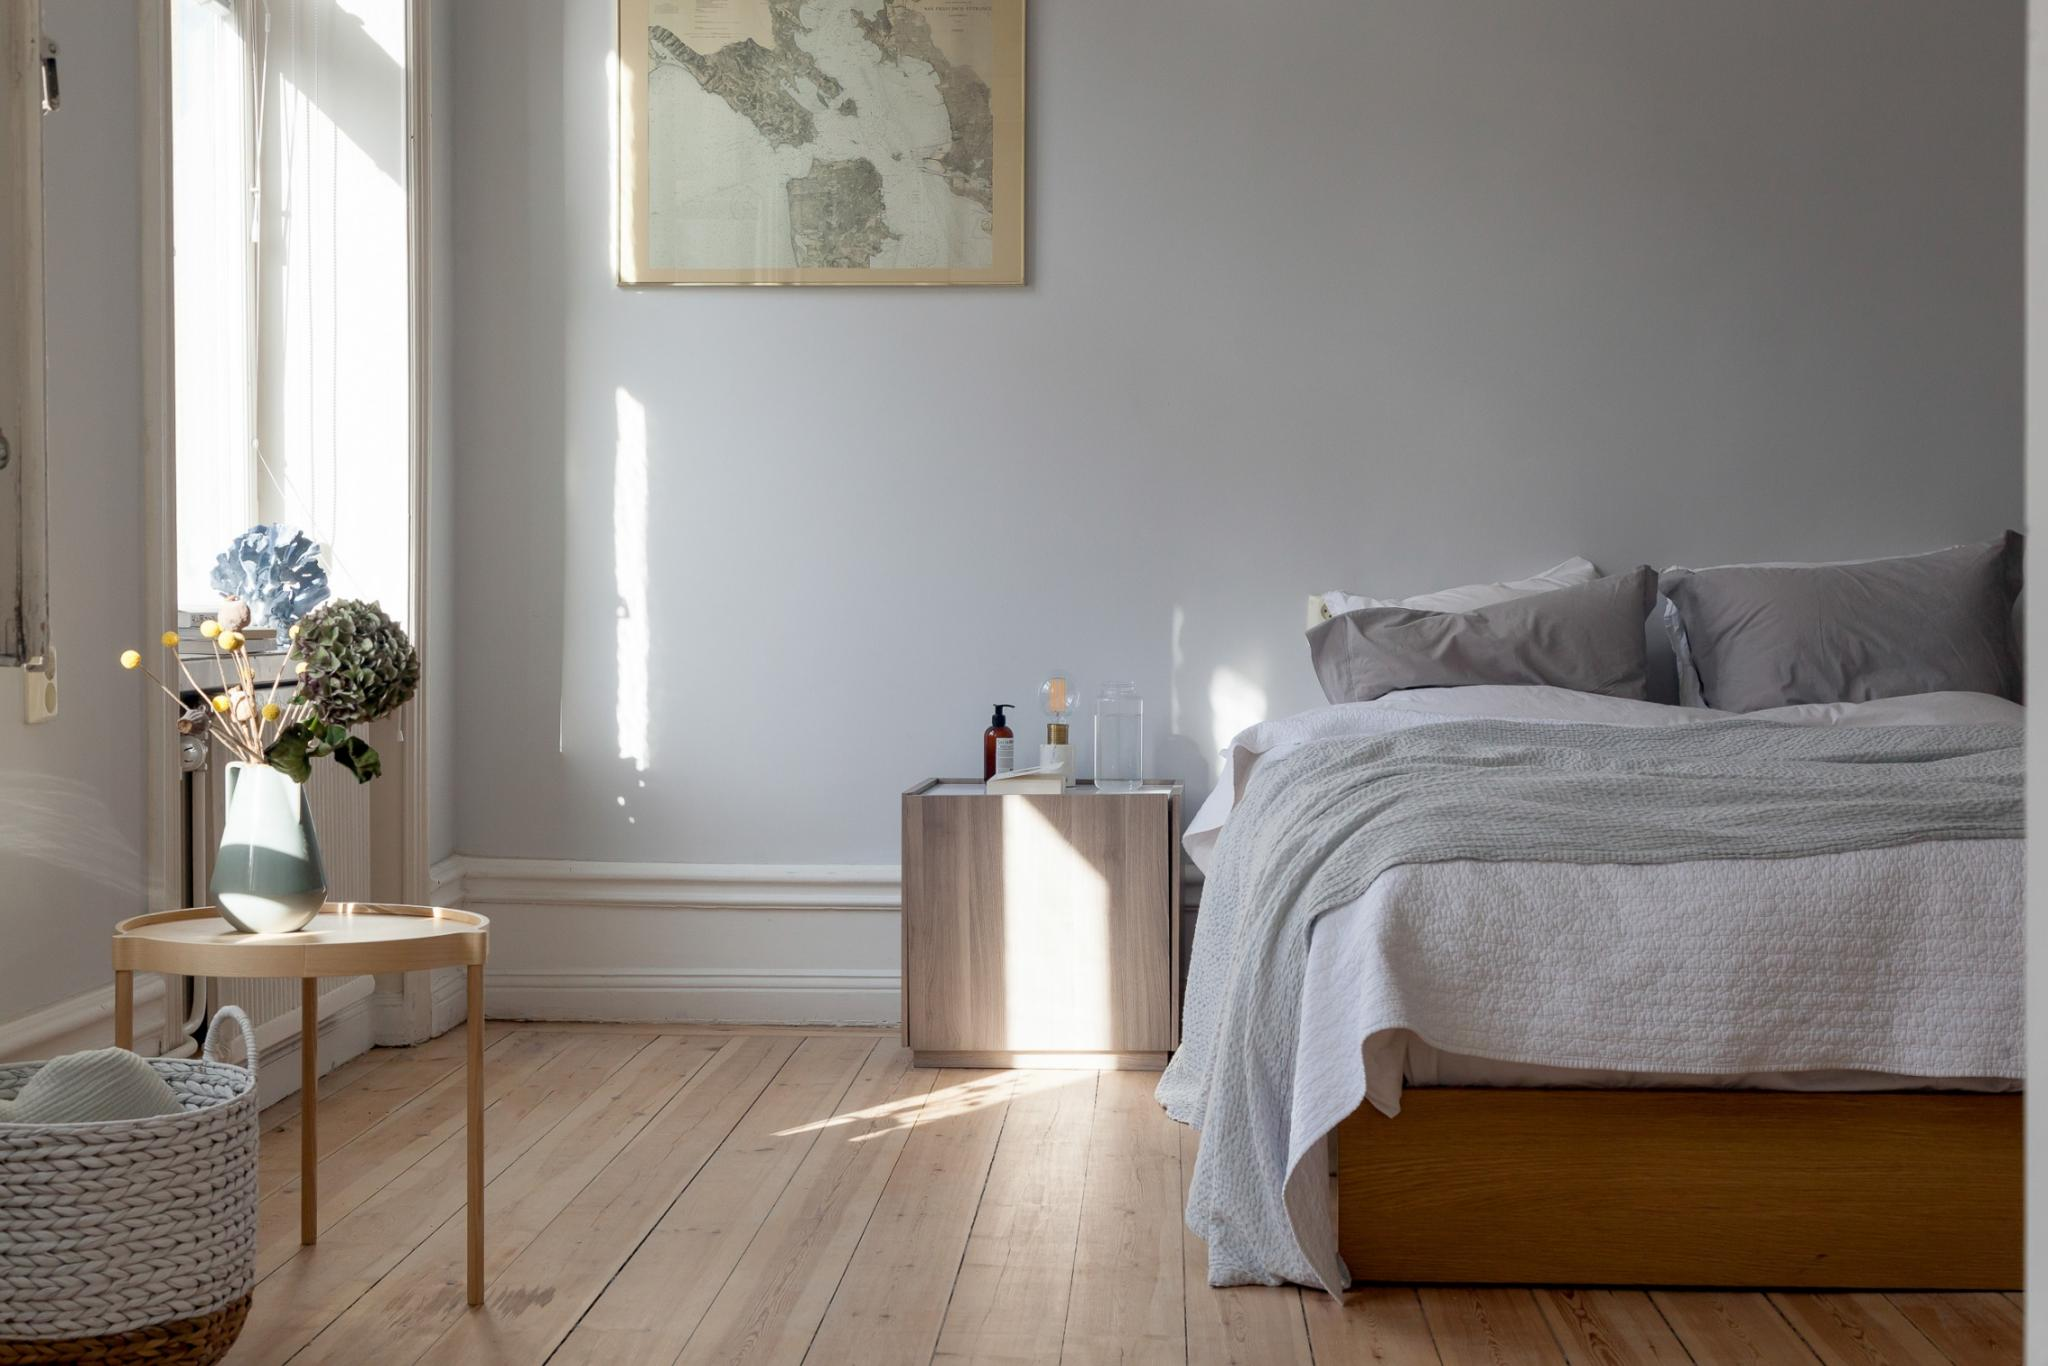 I love the soft tones in this cozy bedroom the very light grey on the bedroom wall matches perfectly with the different wood tones of the bed